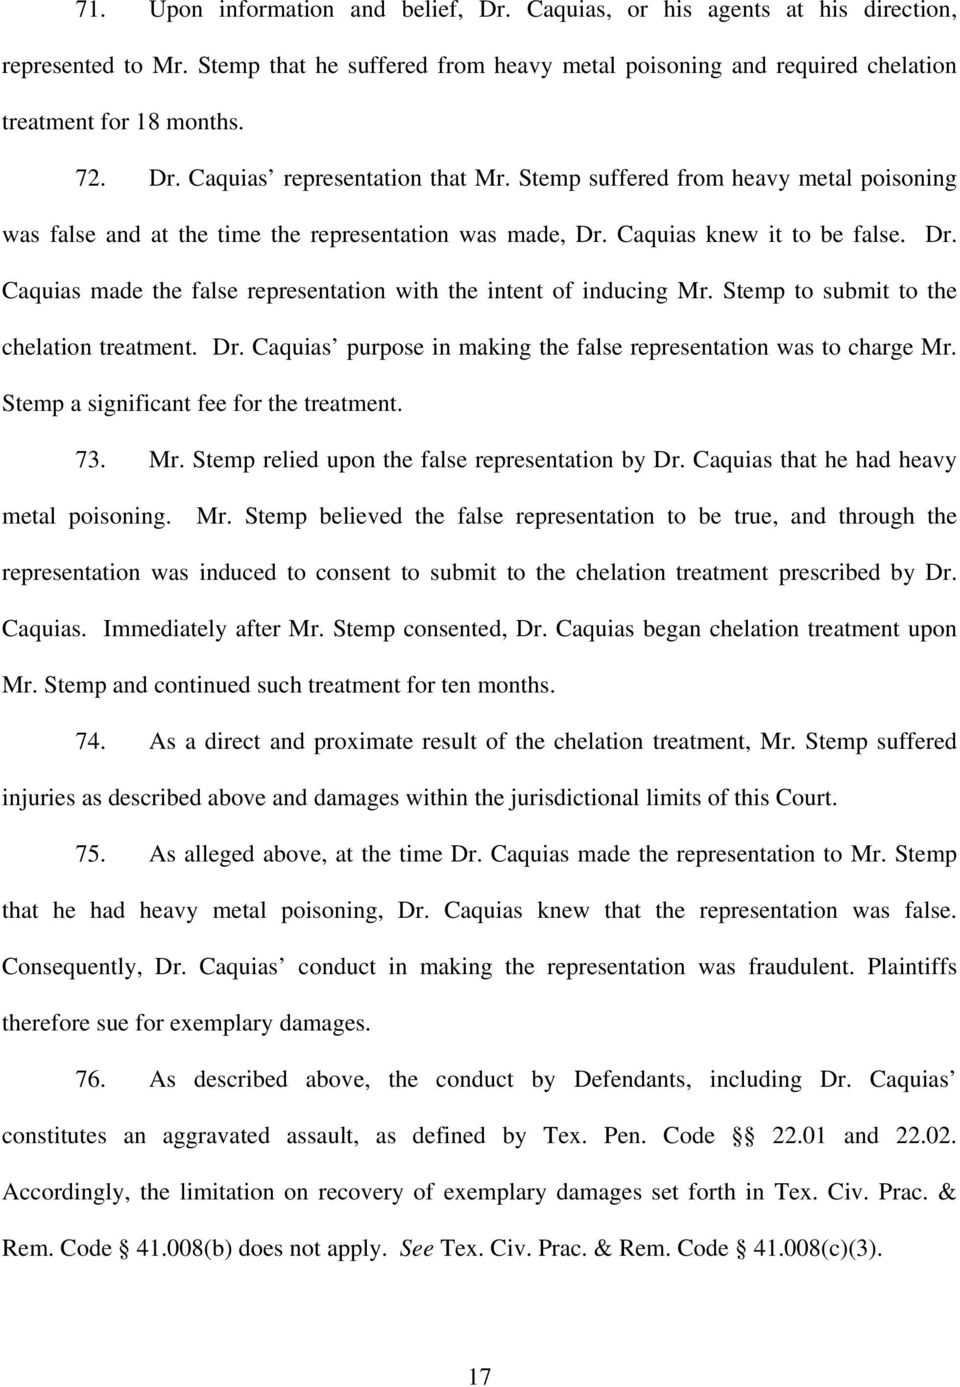 Caquias knew it to be false. Dr. Caquias made the false representation with the intent of inducing Mr. Stemp to submit to the chelation treatment. Dr. Caquias purpose in making the false representation was to charge Mr.